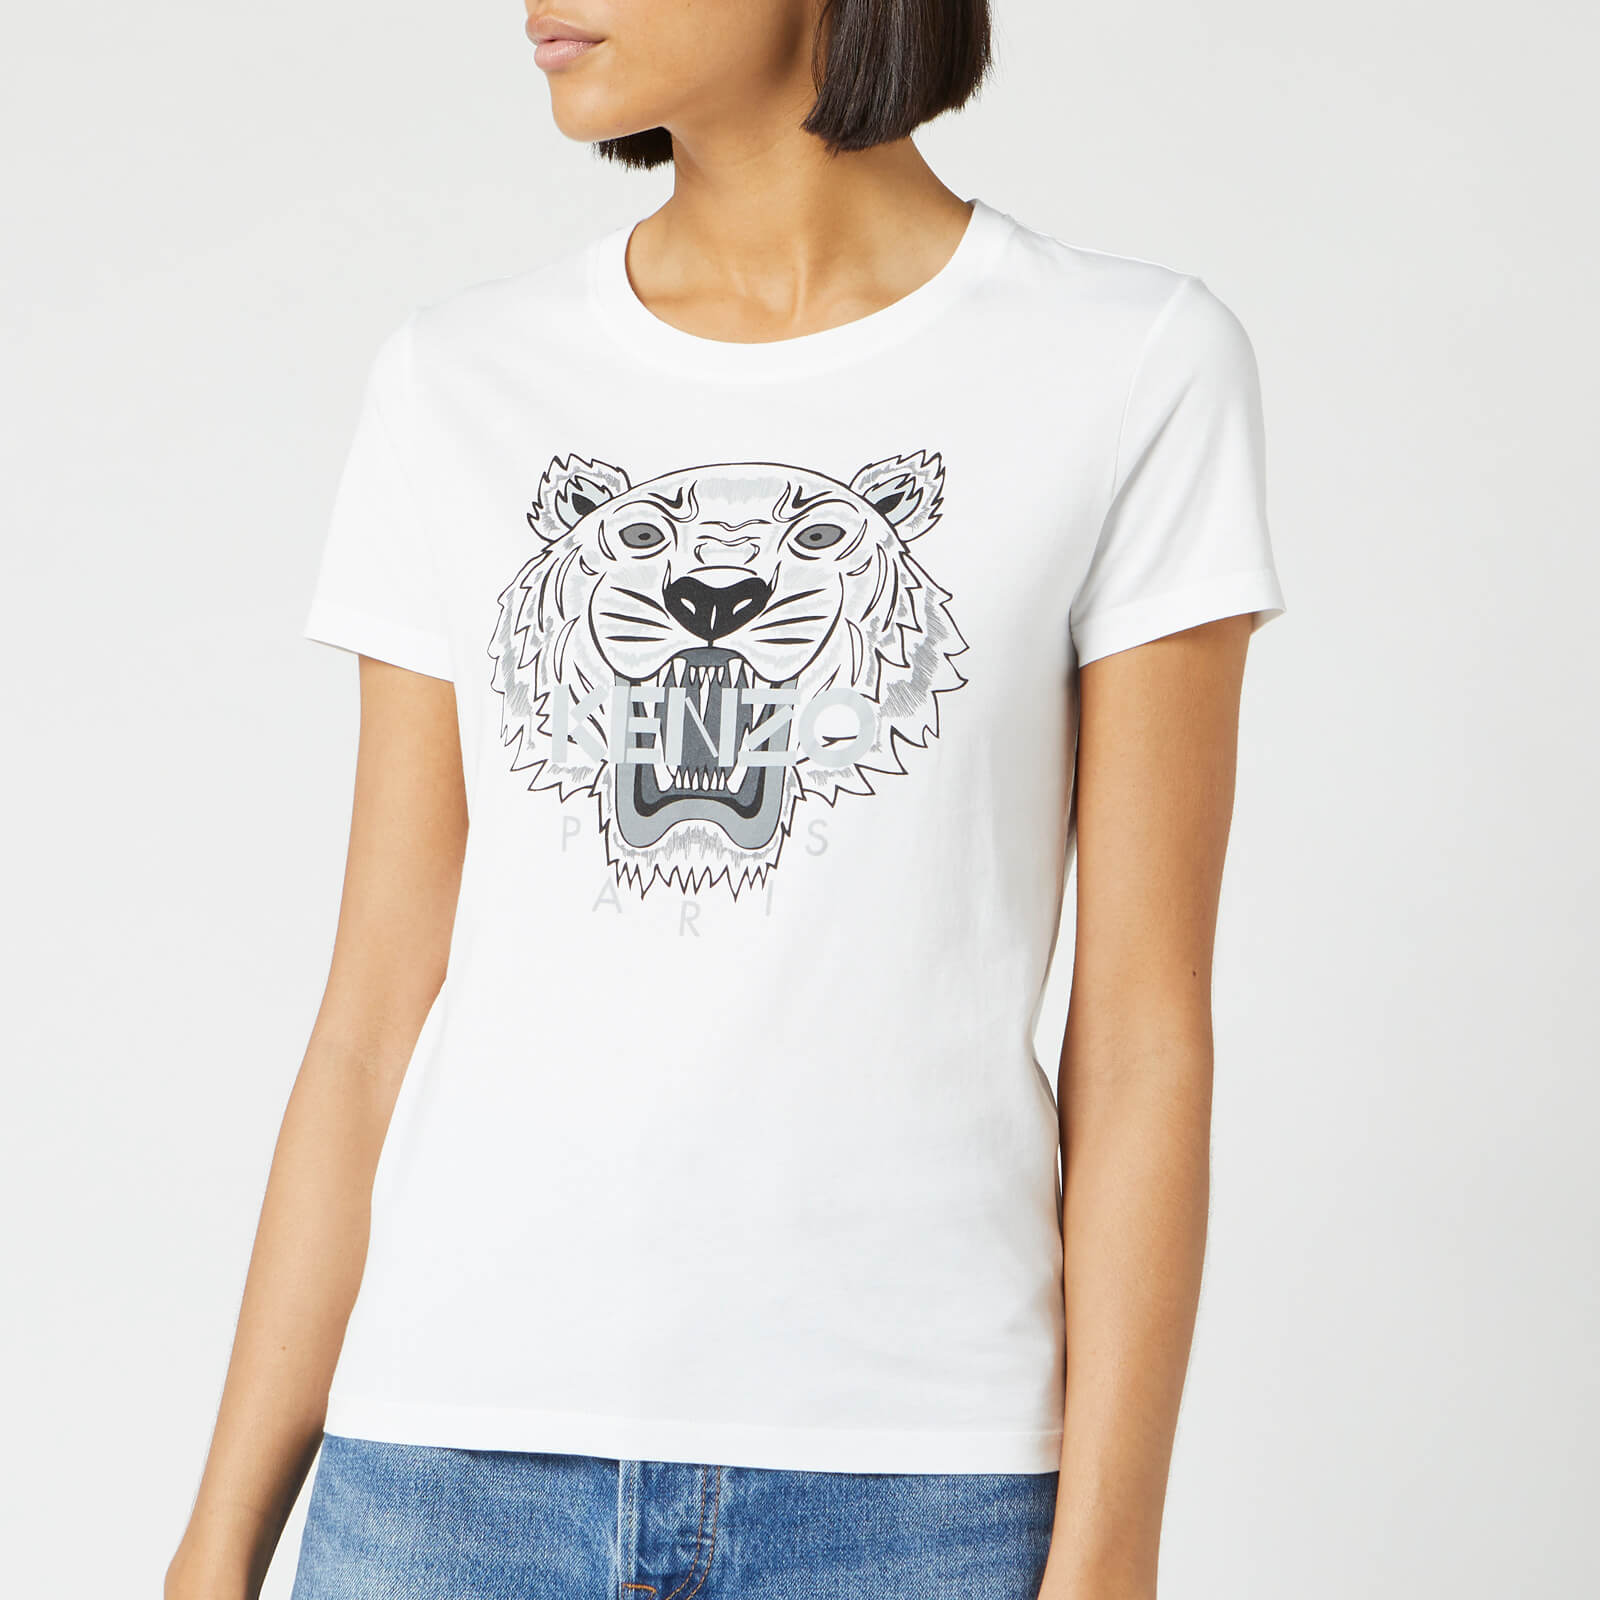 a8f86b433c1d KENZO Women's Tiger Classic T-Shirt - White - Free UK Delivery over £50